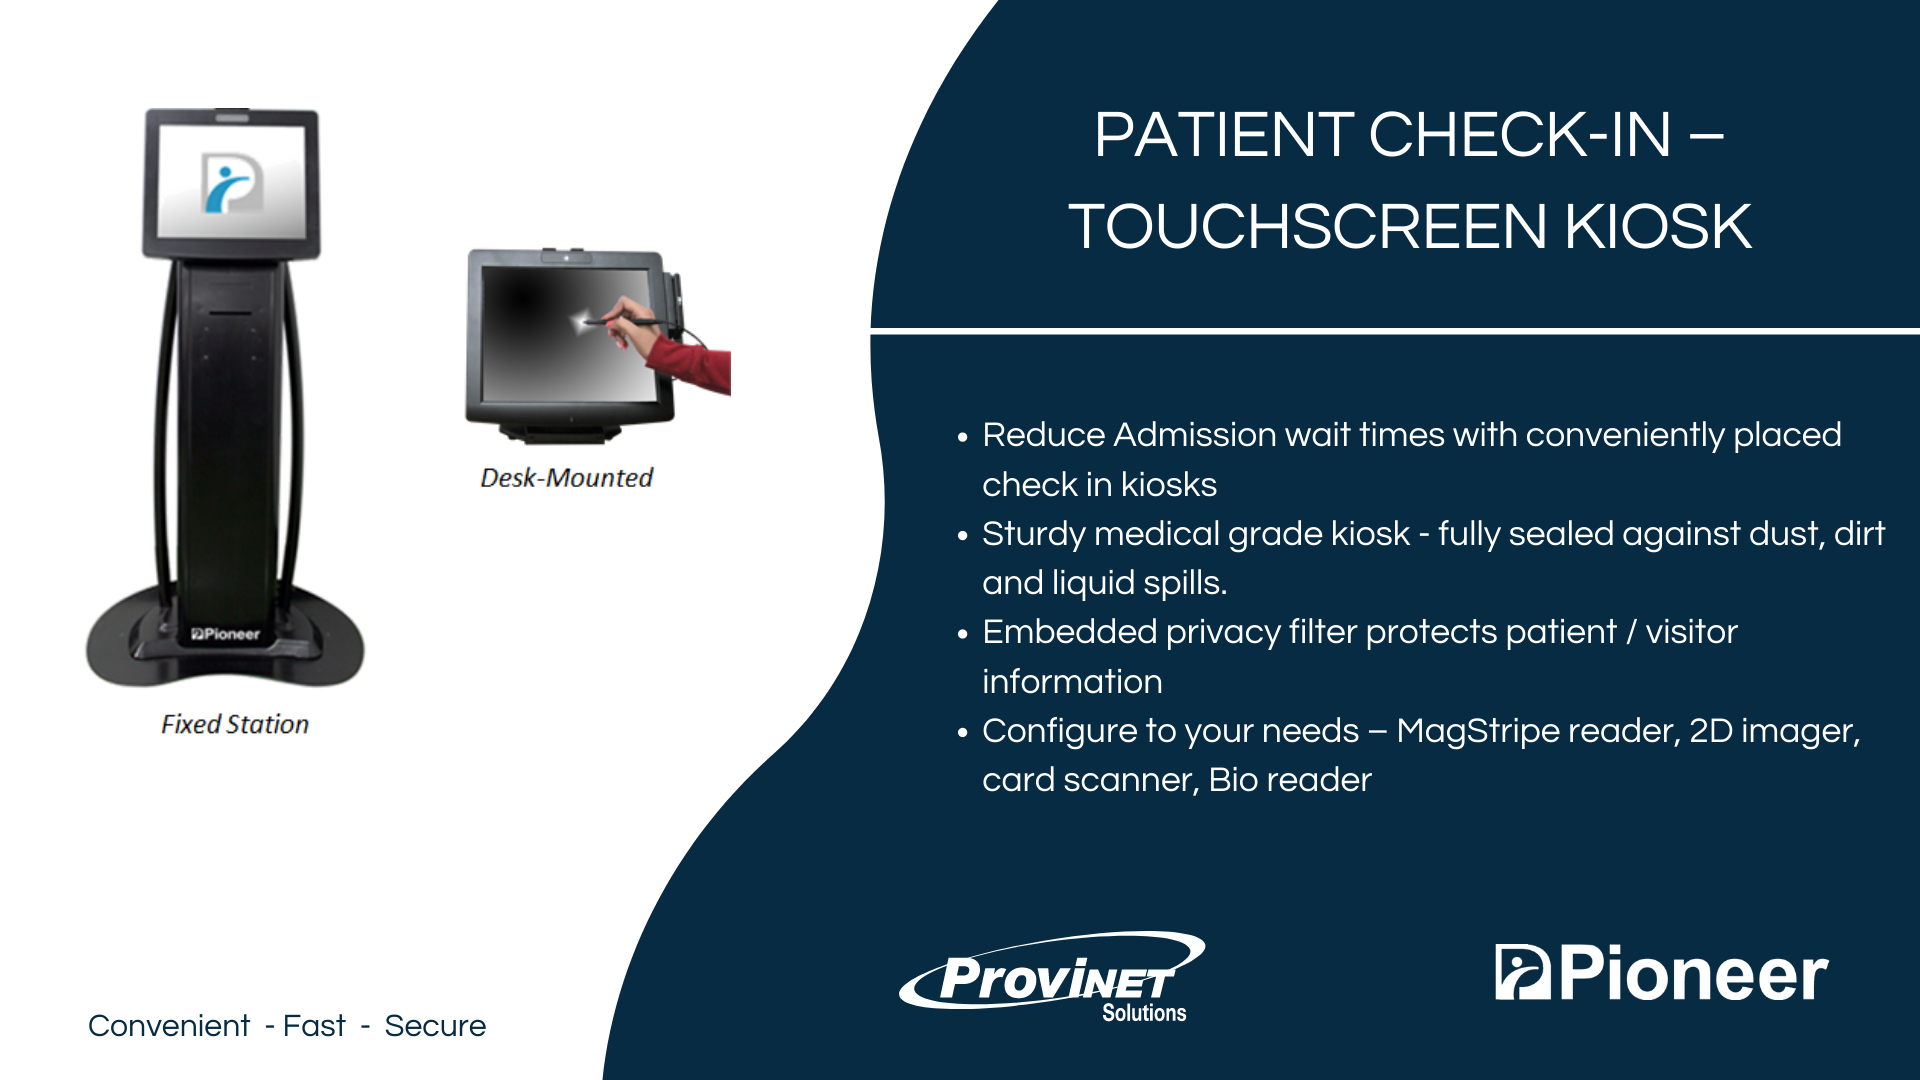 Patient Check-In – Touchscreen Kiosk